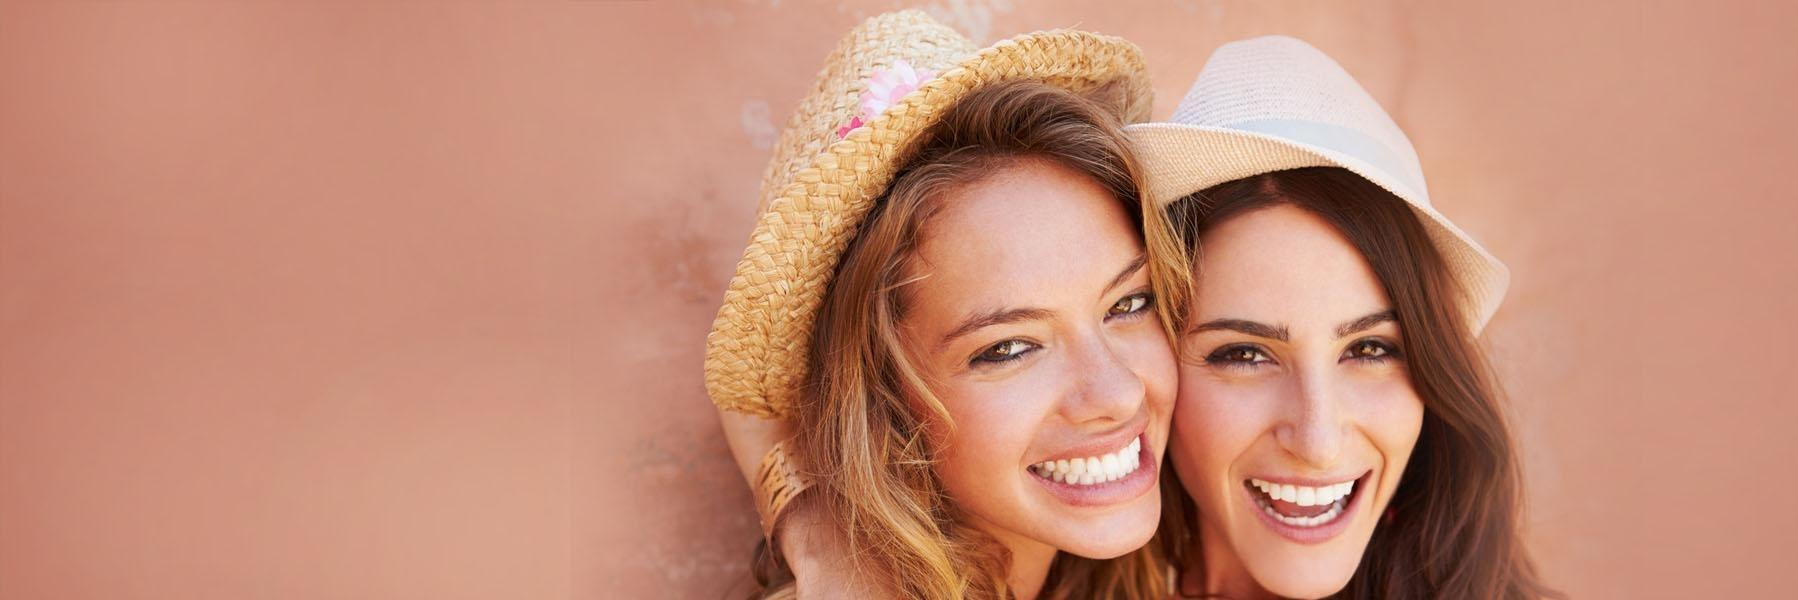 Teeth Whitening in Moline, IL